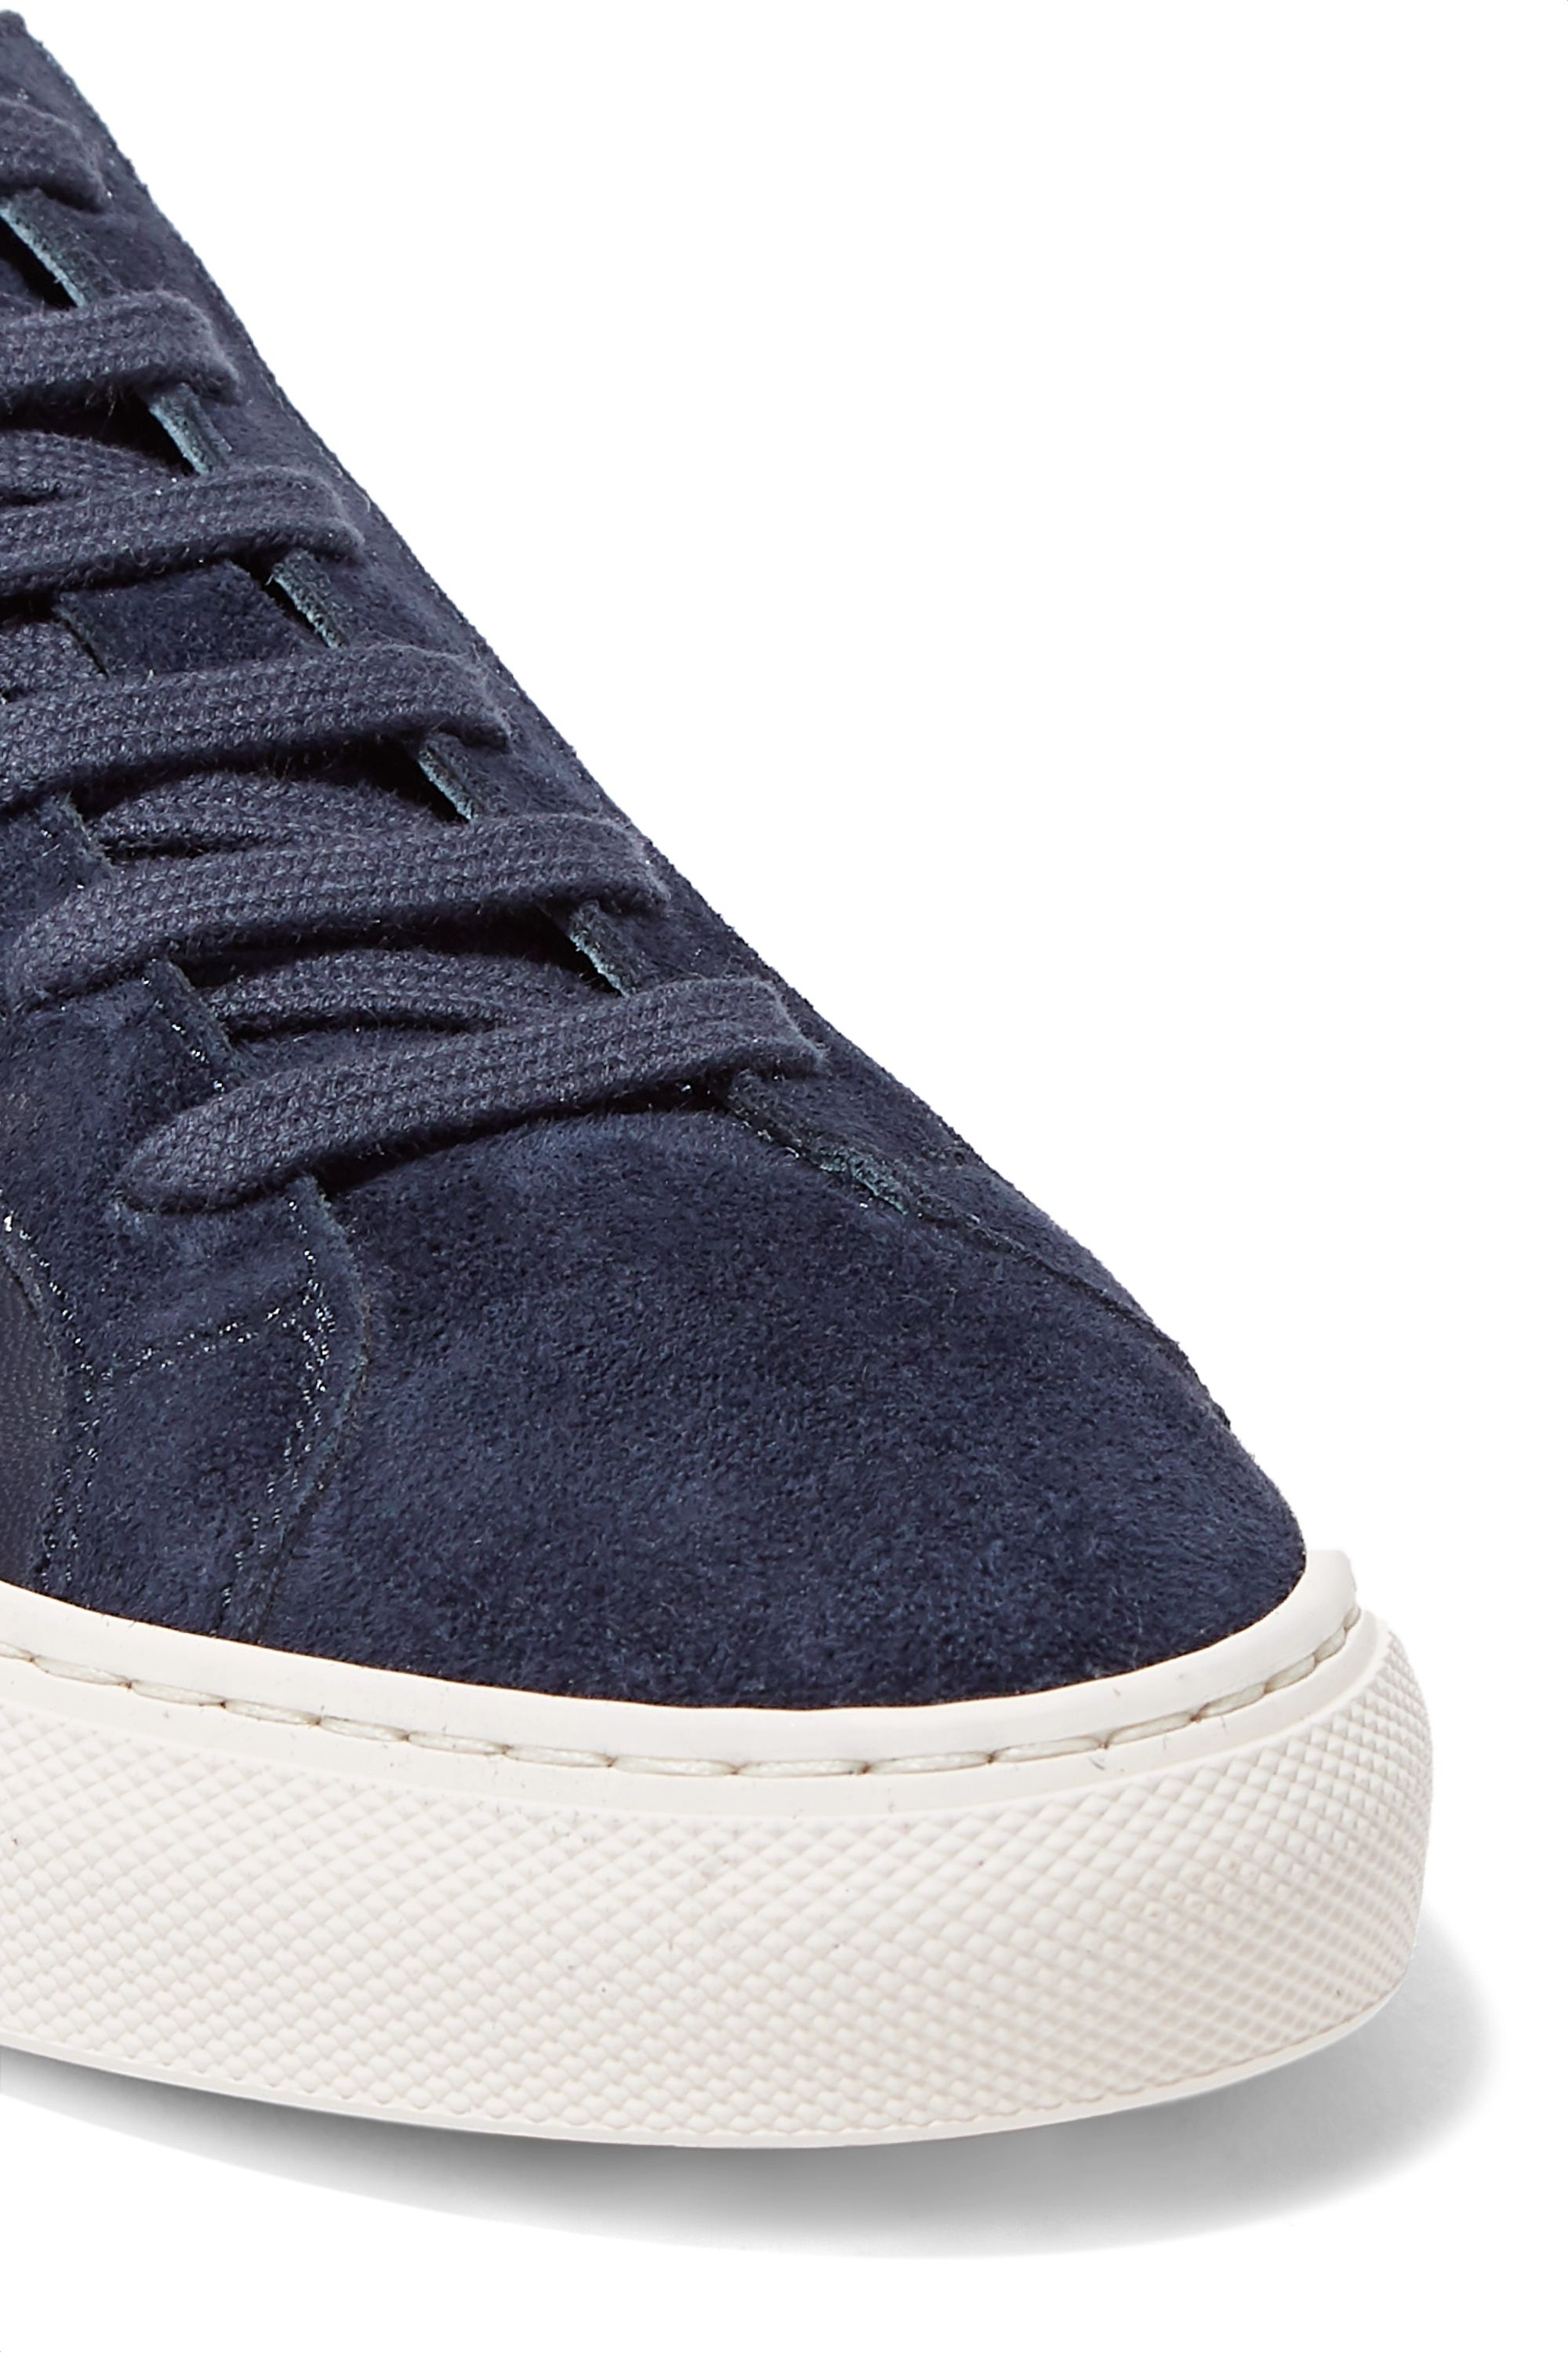 common projects navy suede